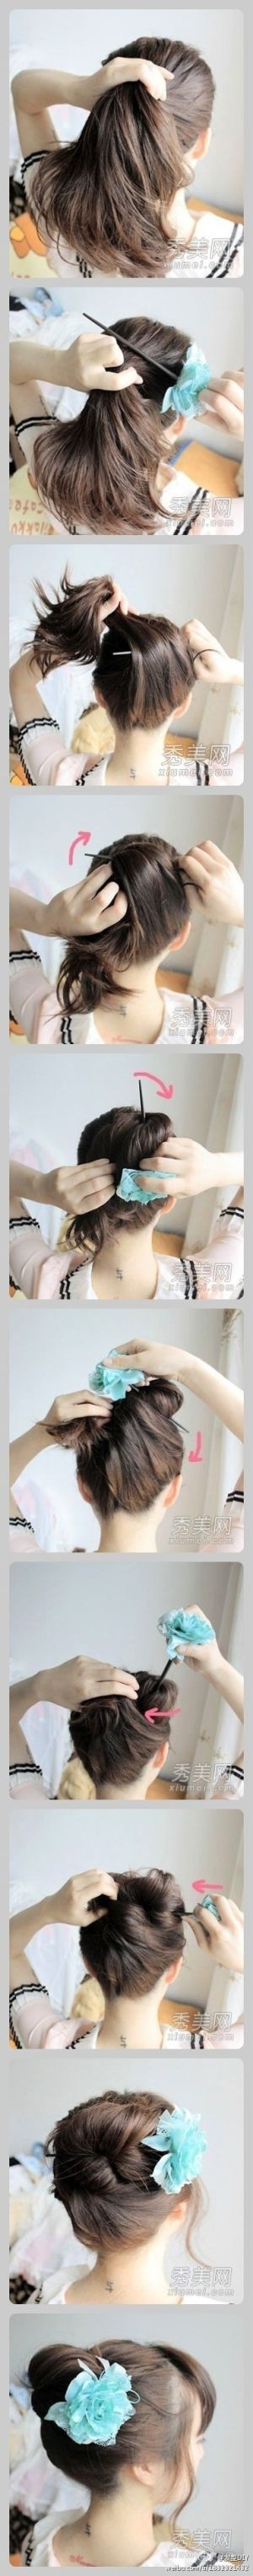 How to Pin up Hair by jean